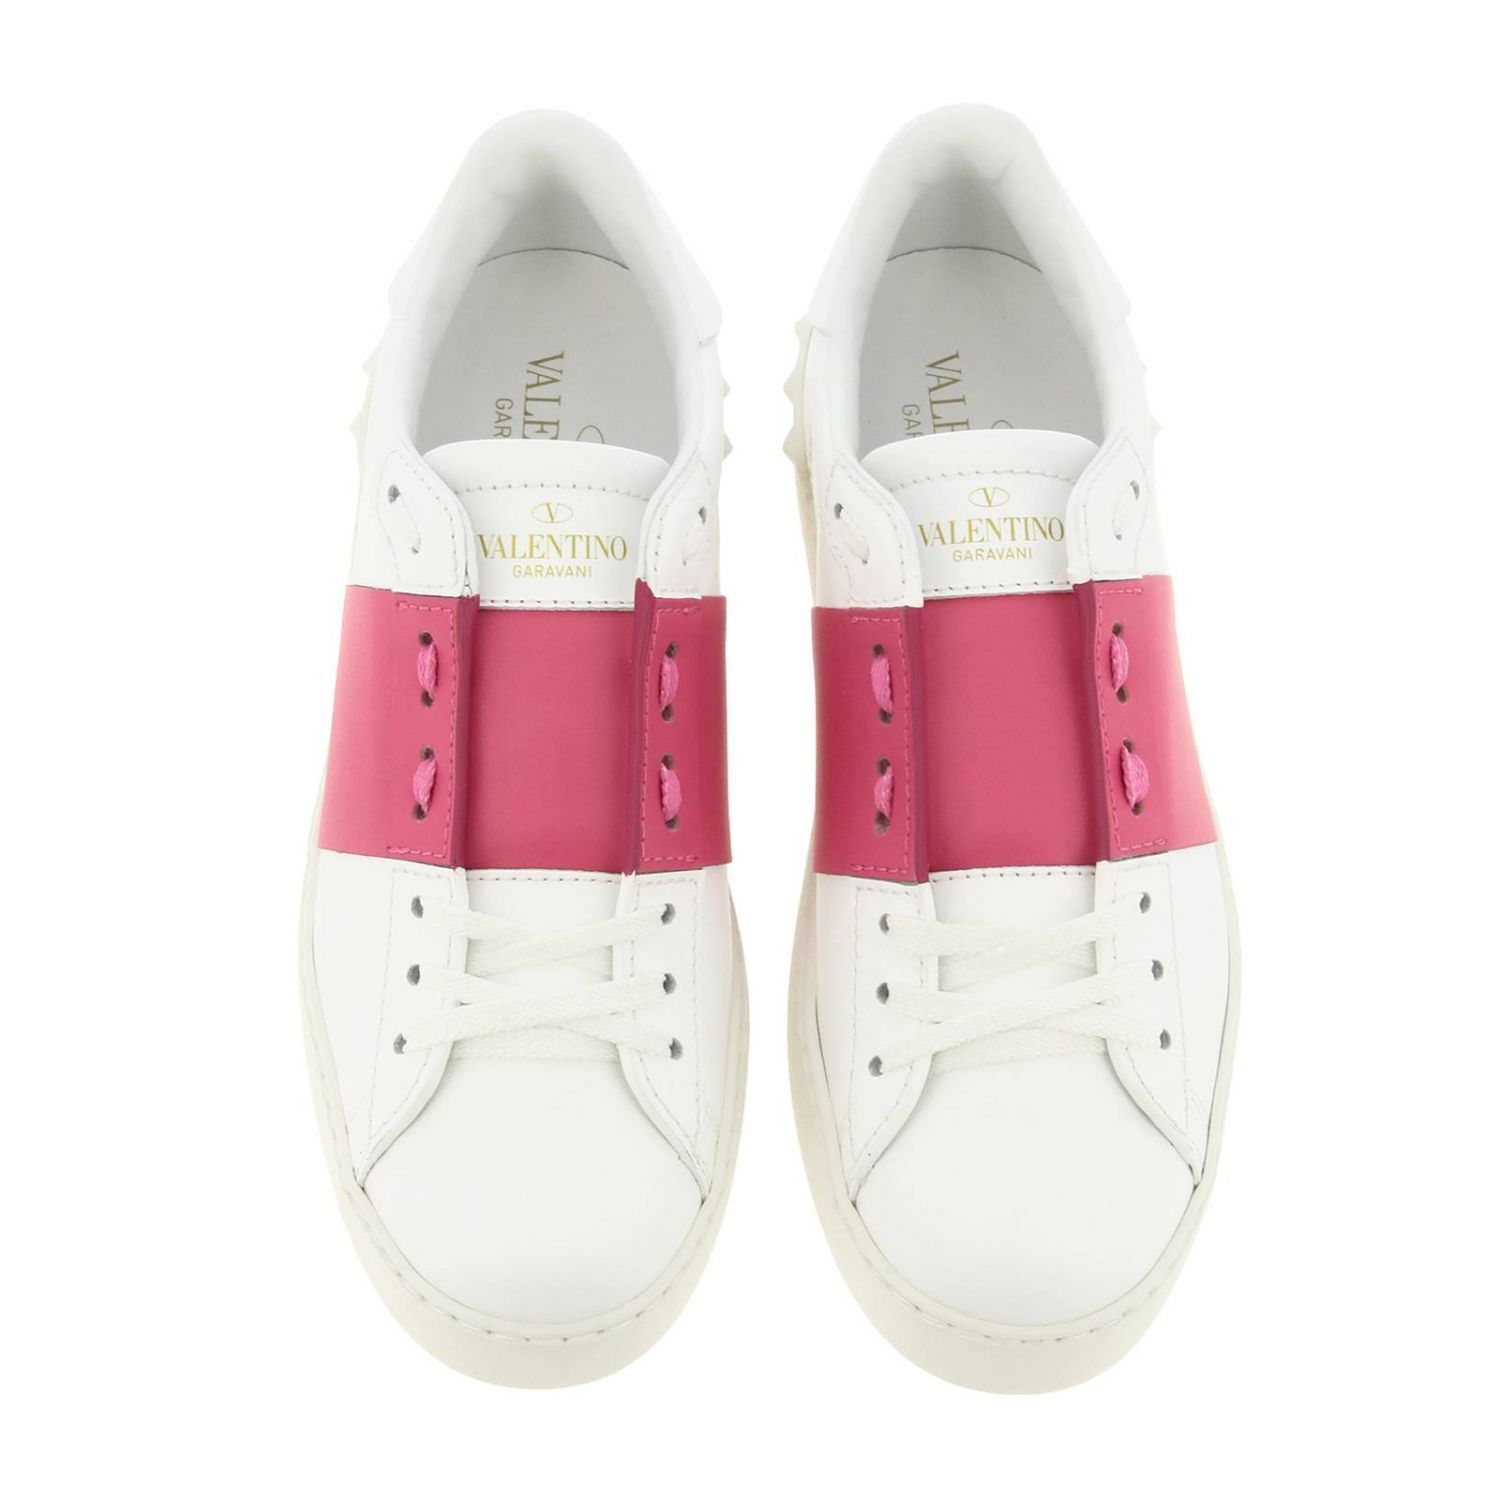 Open Rockstud sneakers Valentino Garavani in genuine leather with band white 3